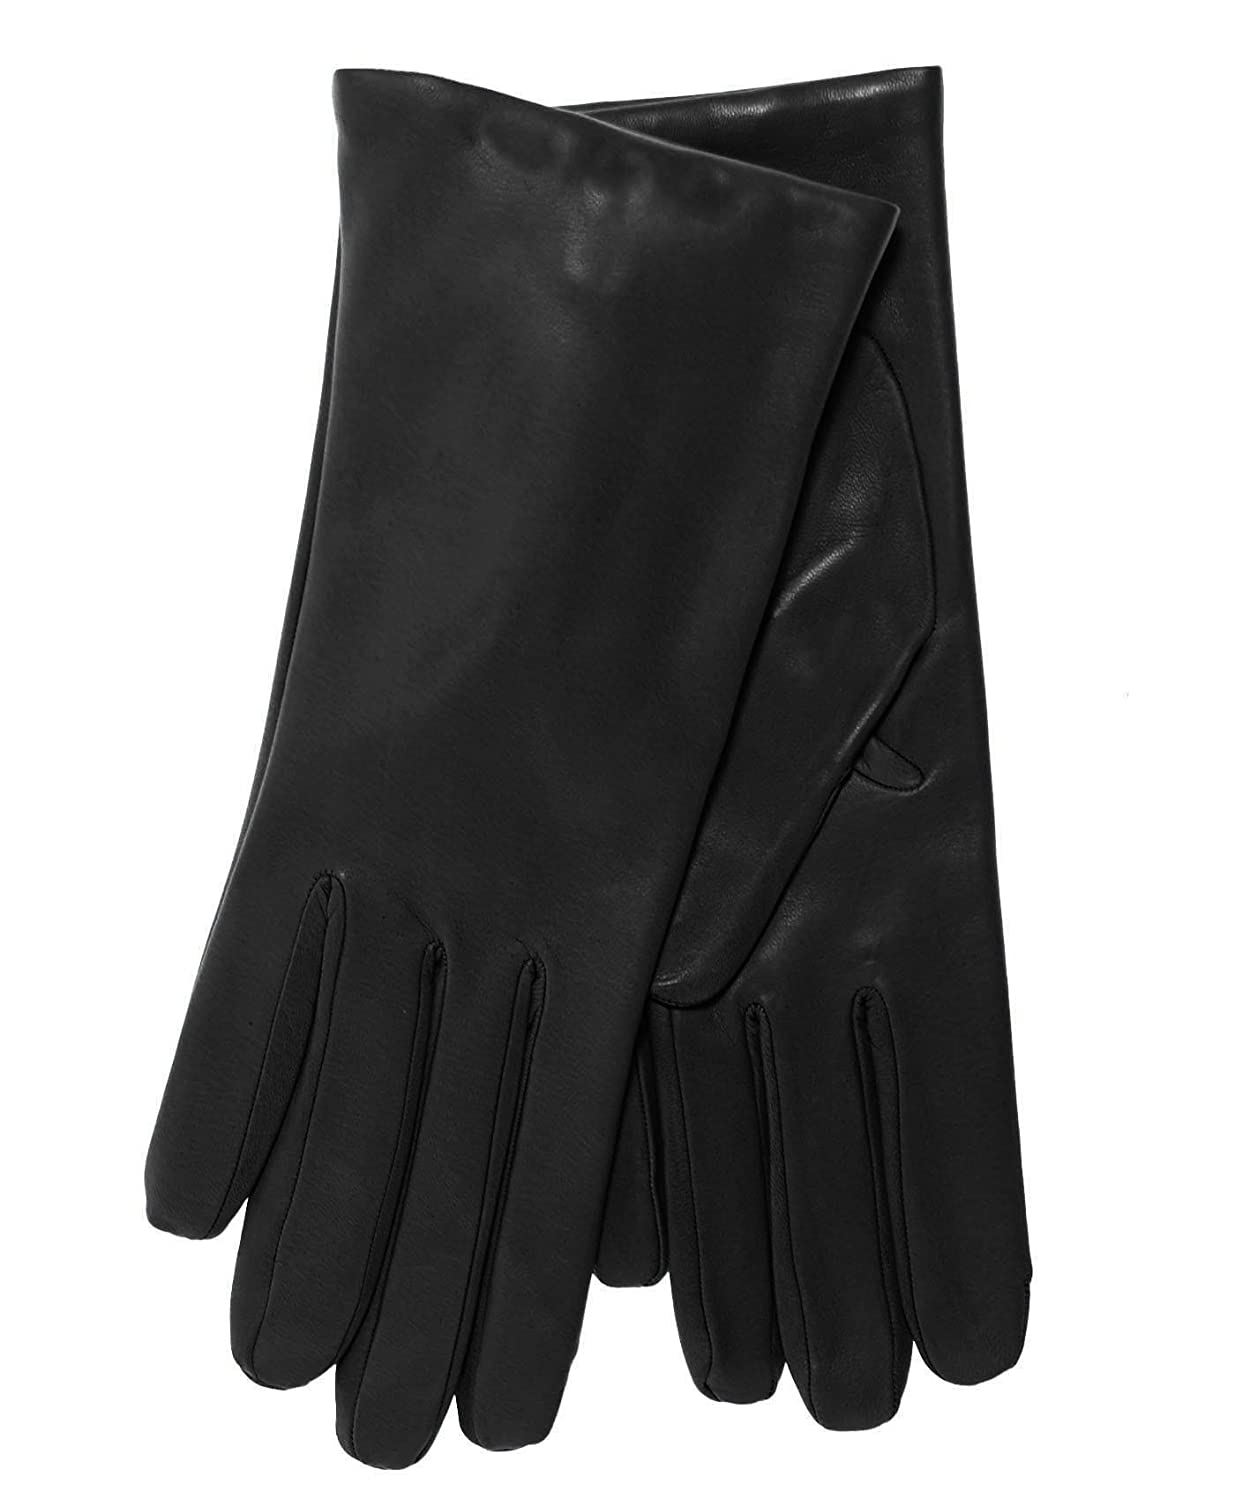 Black leather gloves with coloured fingers - Fratelli Orsini Everyday Women S Italian Cashmere Lined Leather Gloves Size 6 1 2 Color Black At Amazon Women S Clothing Store Cold Weather Gloves